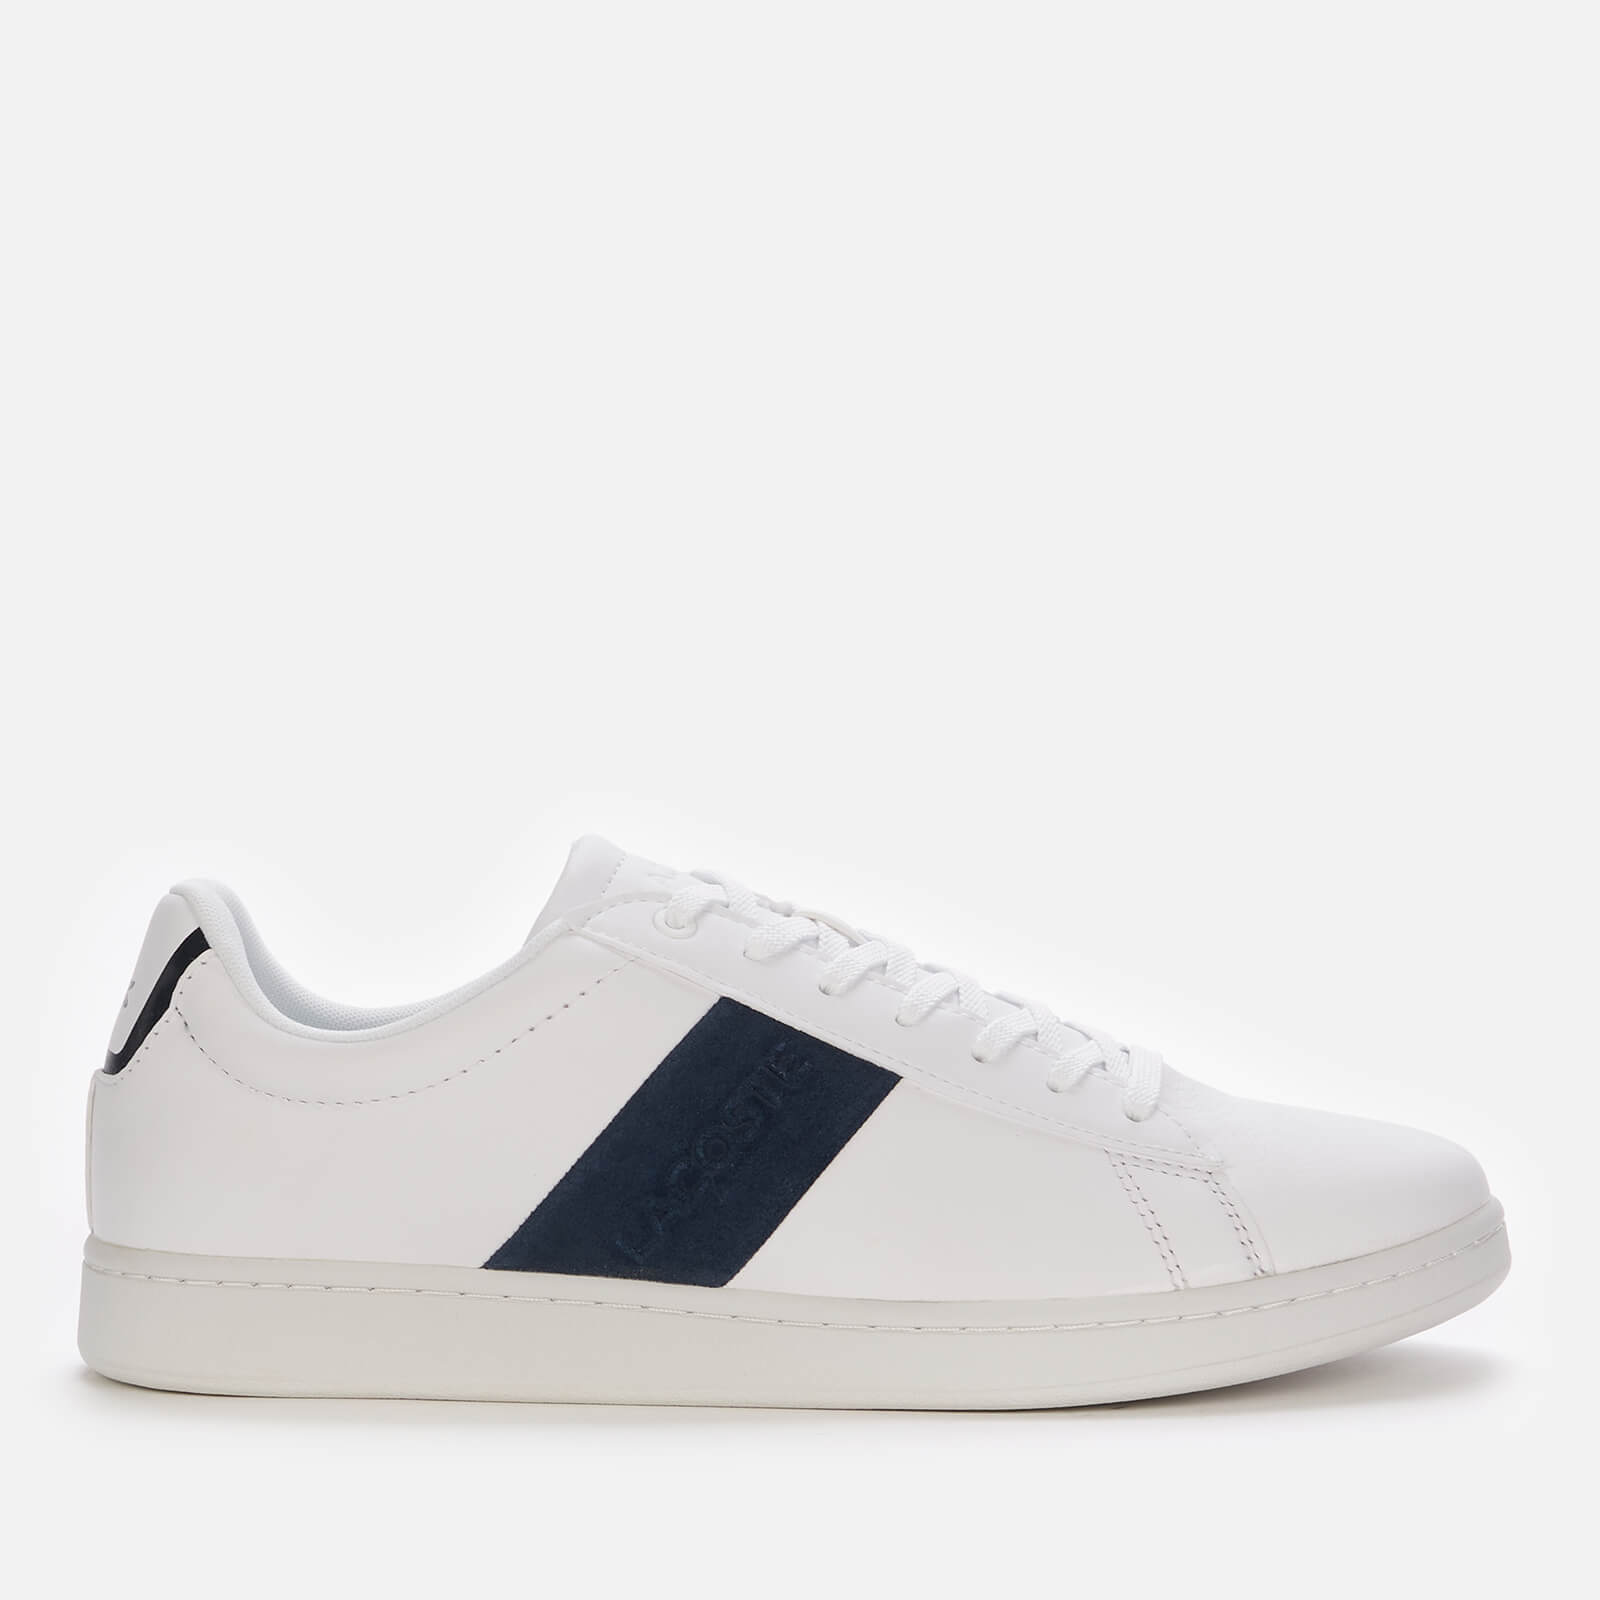 Lacoste Men's Carnaby Evo 0120 3 Leather Cupsole Trainers - White/Navy - UK 10